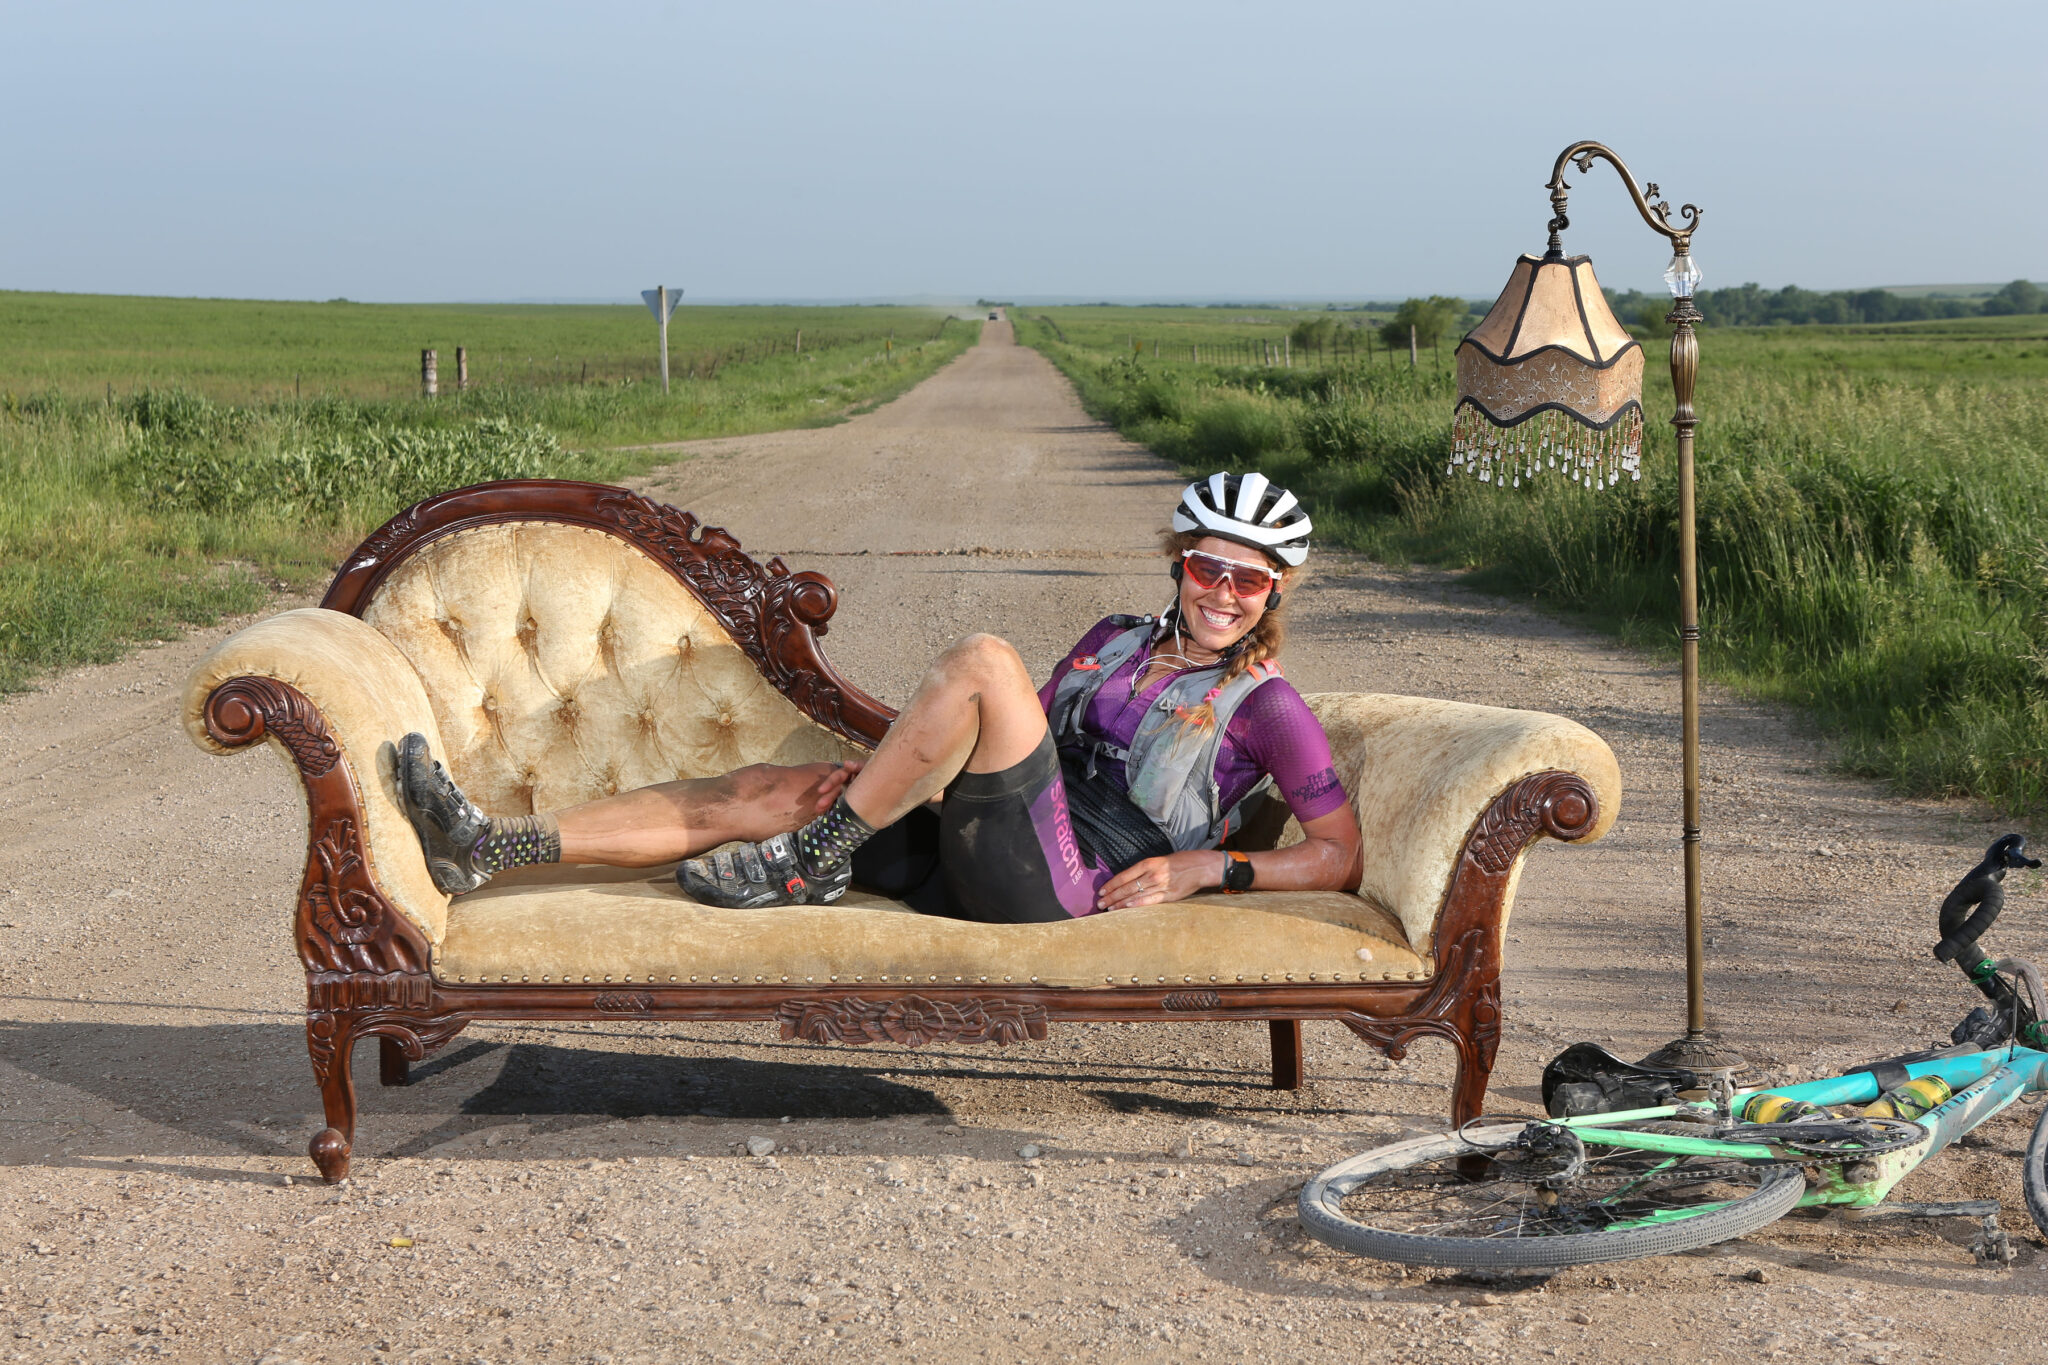 Dirty Kanza – Bike Race or Vision Quest?